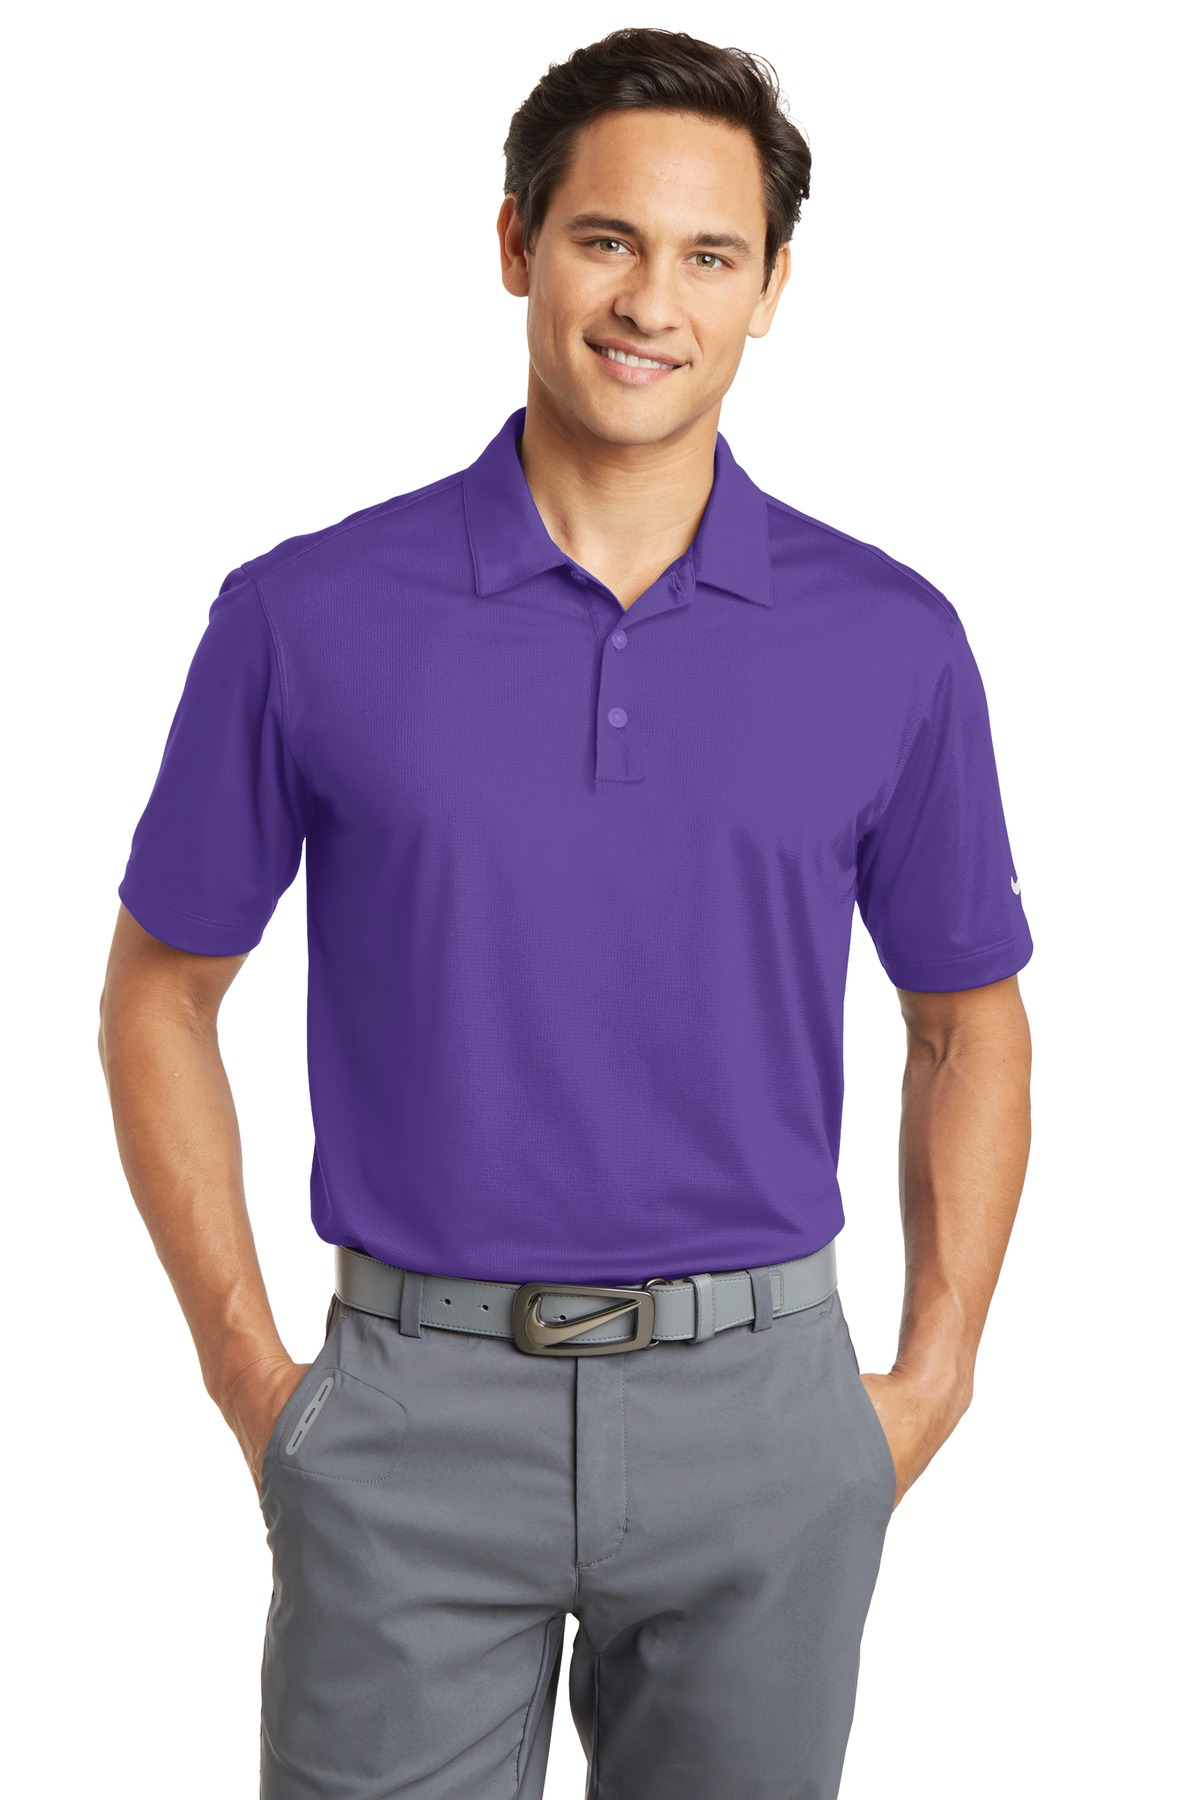 Nike Dri-FIT Vertical Mesh Polo. 637167 - Court Purple